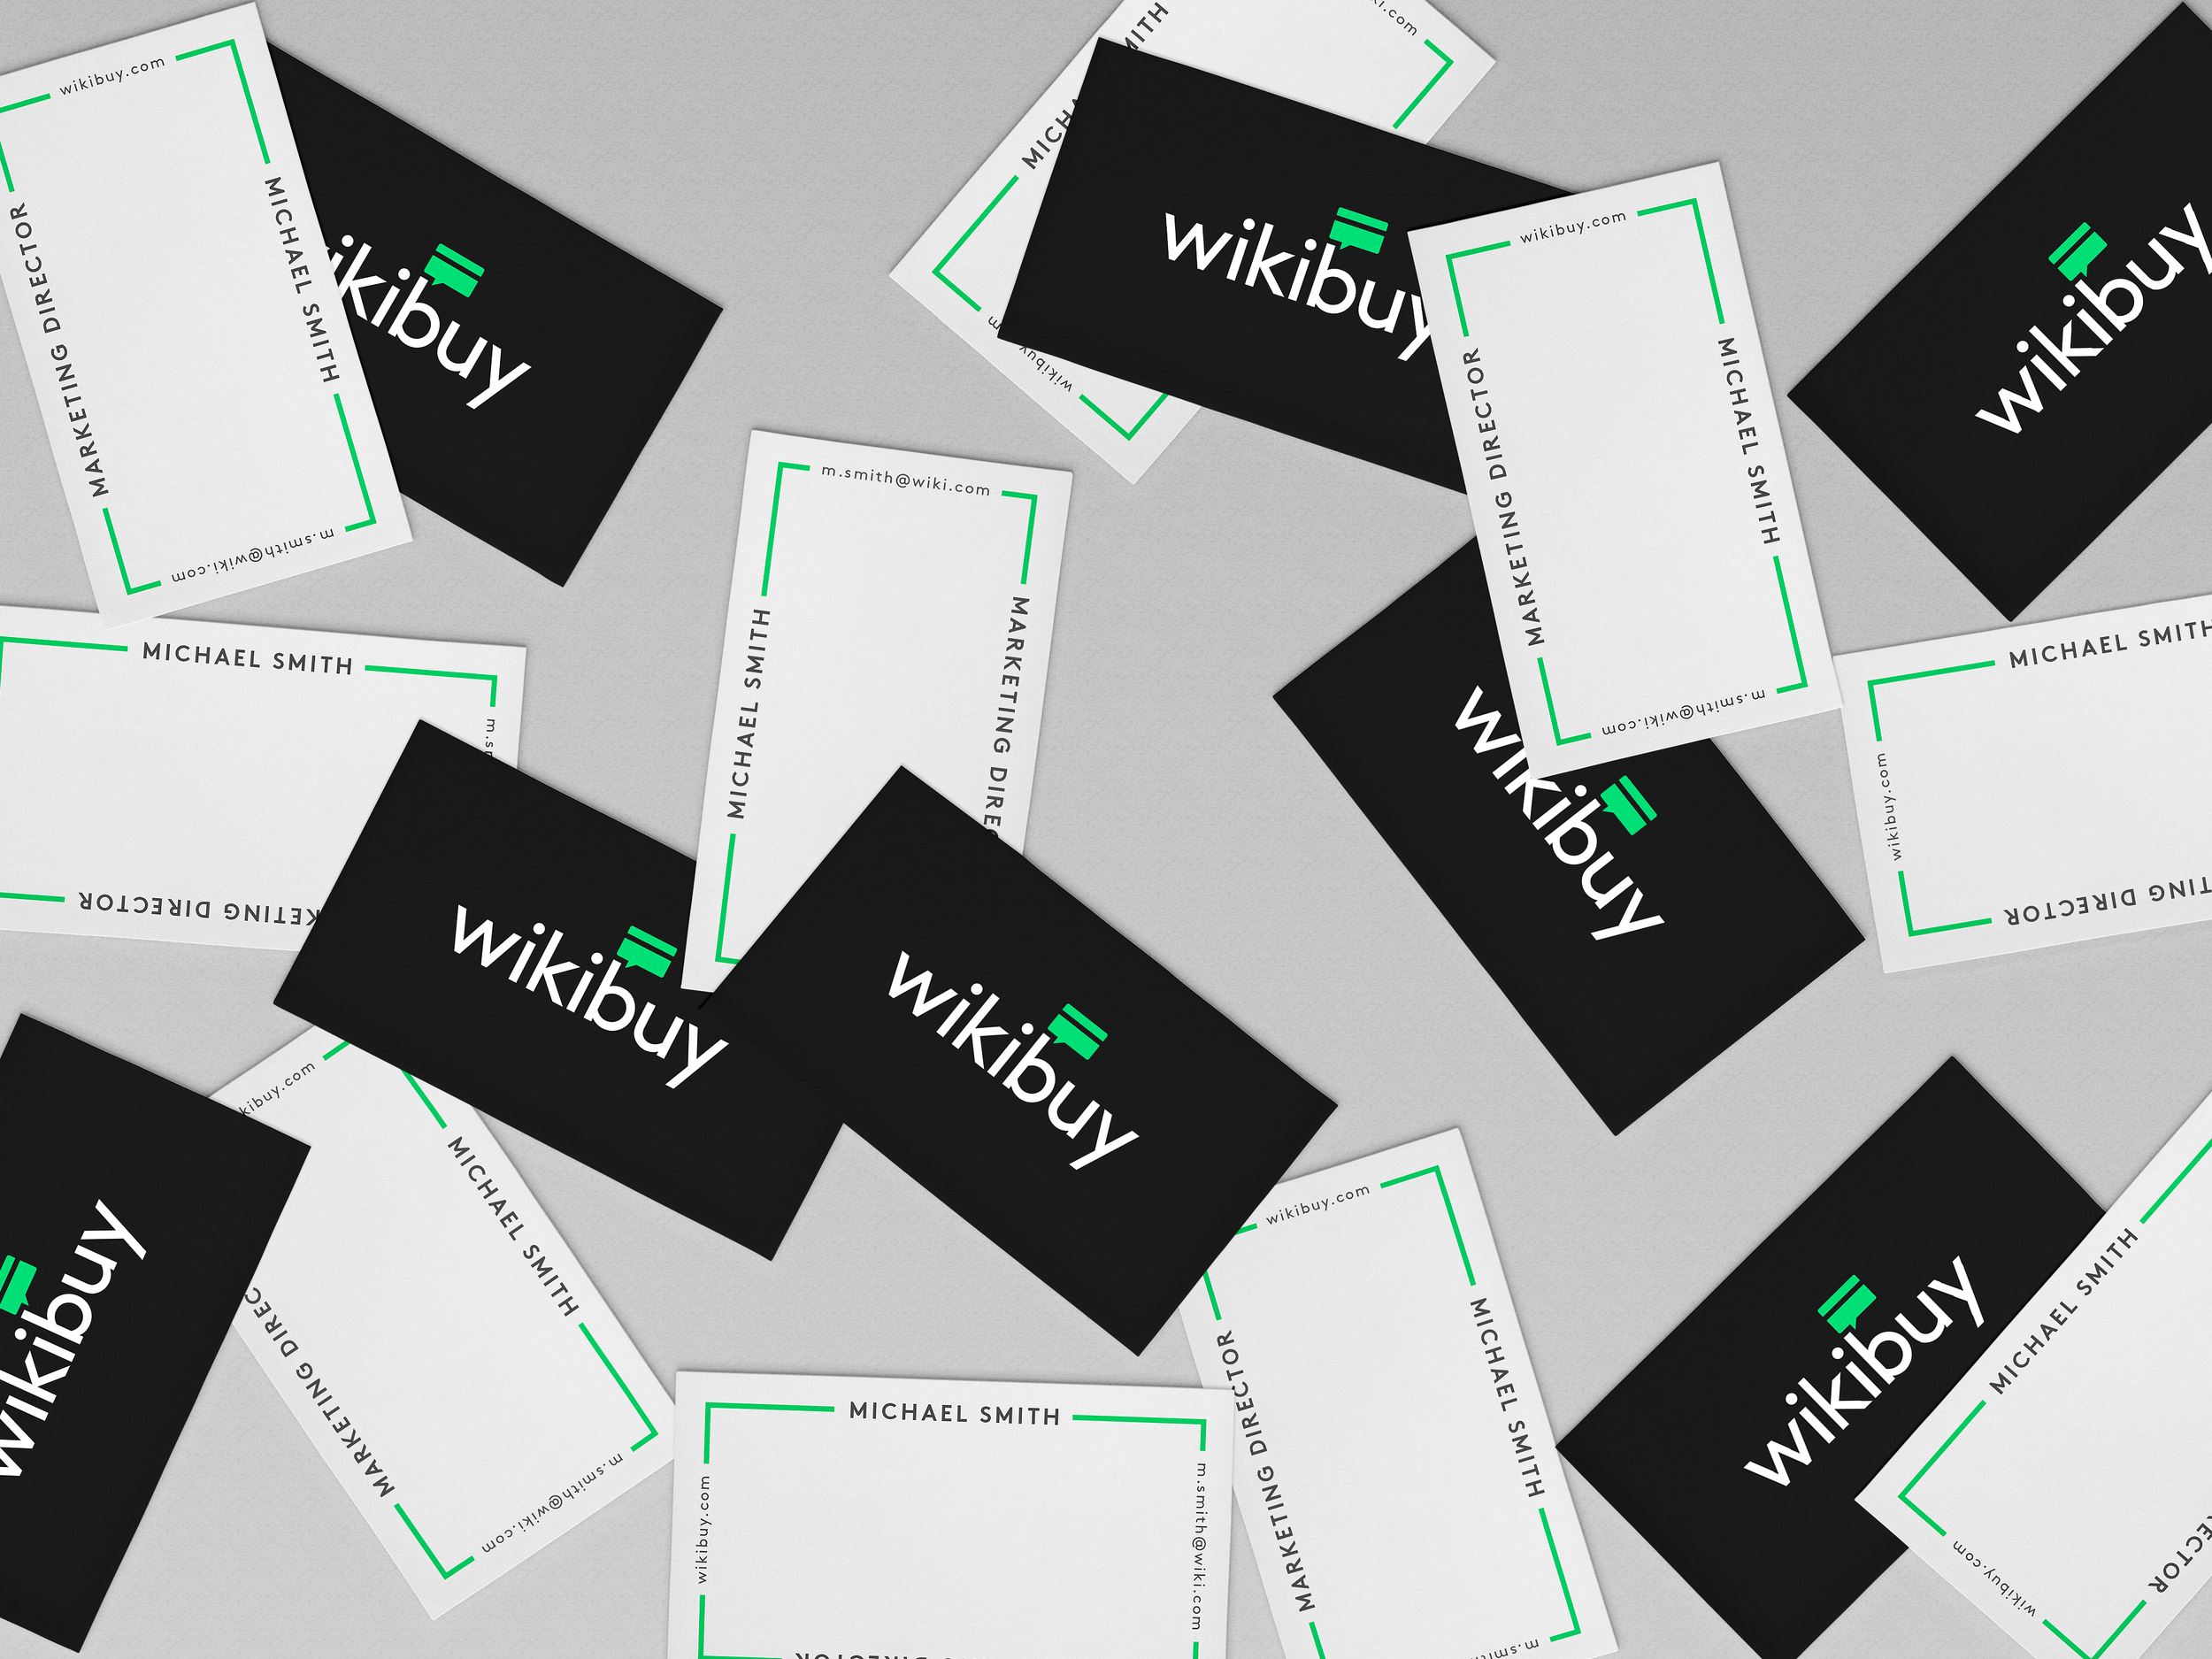 An logo and branding project for a search engine started up called Wikibuy.